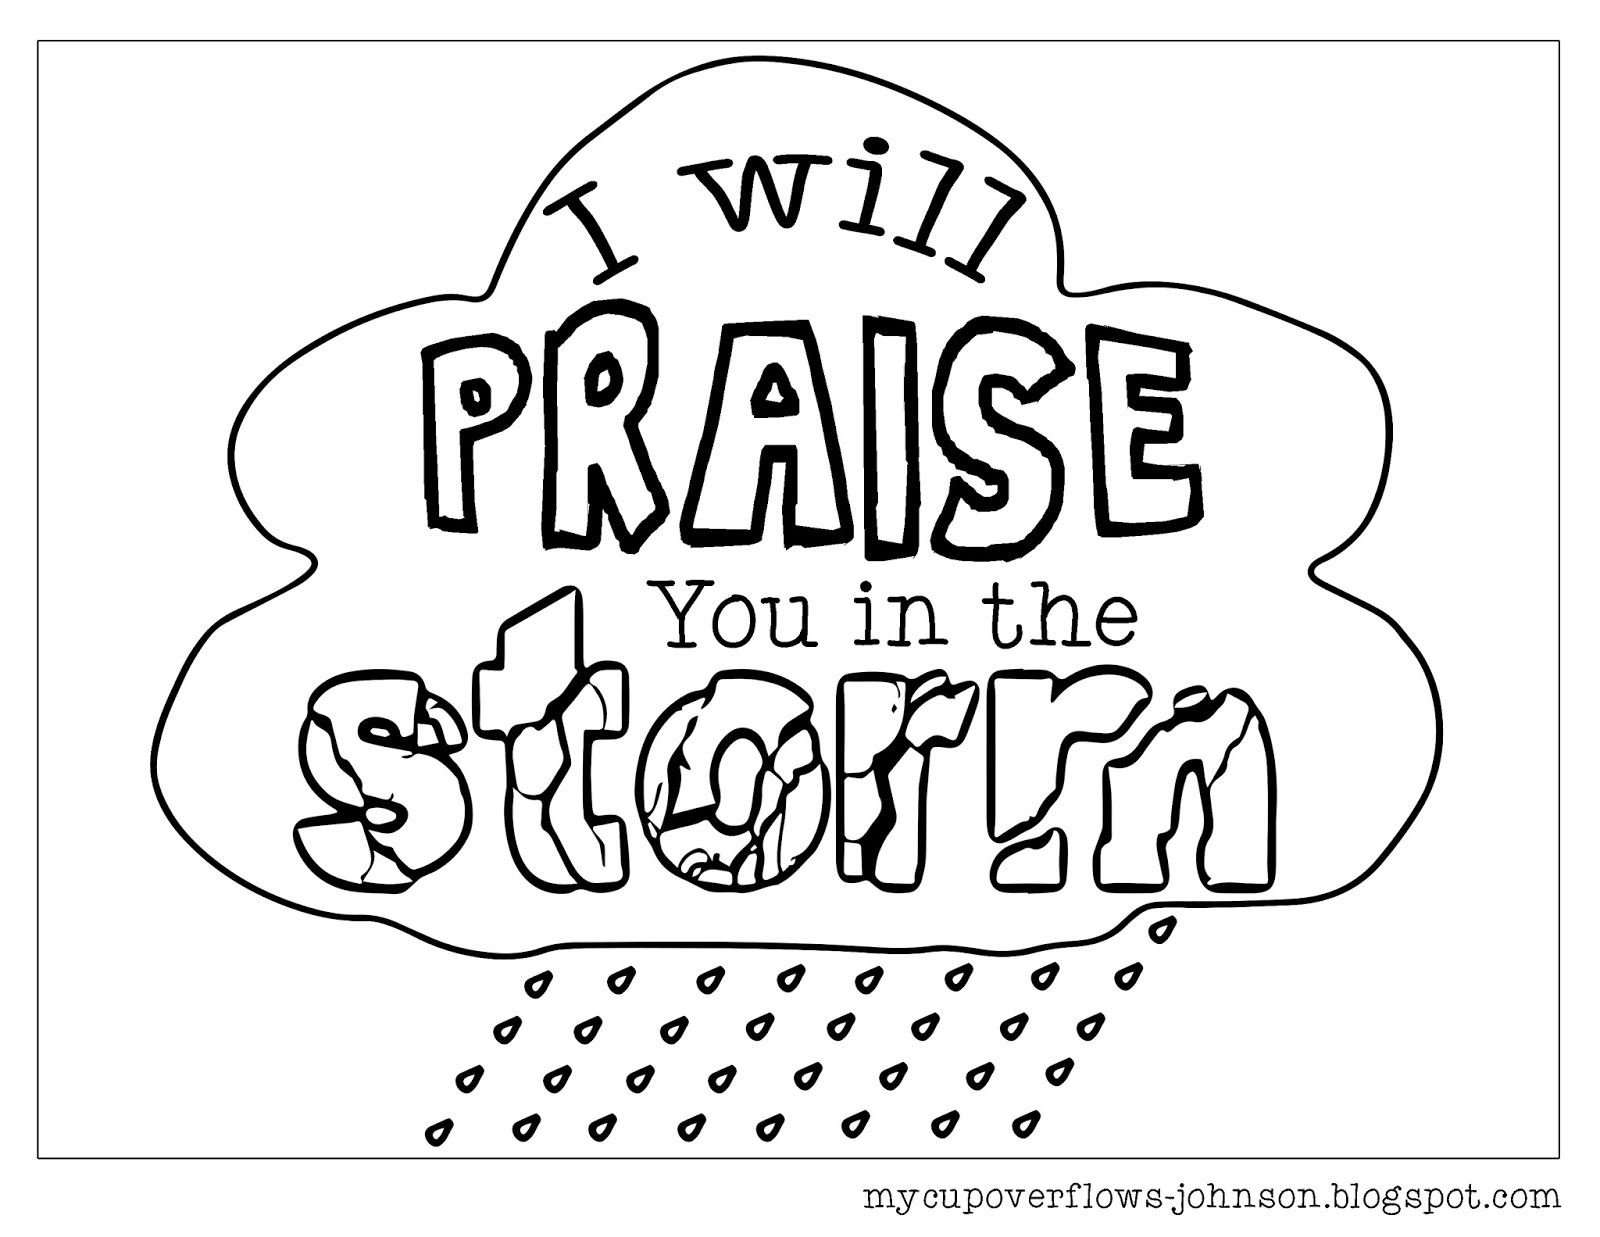 coloring pages praise - photo#18